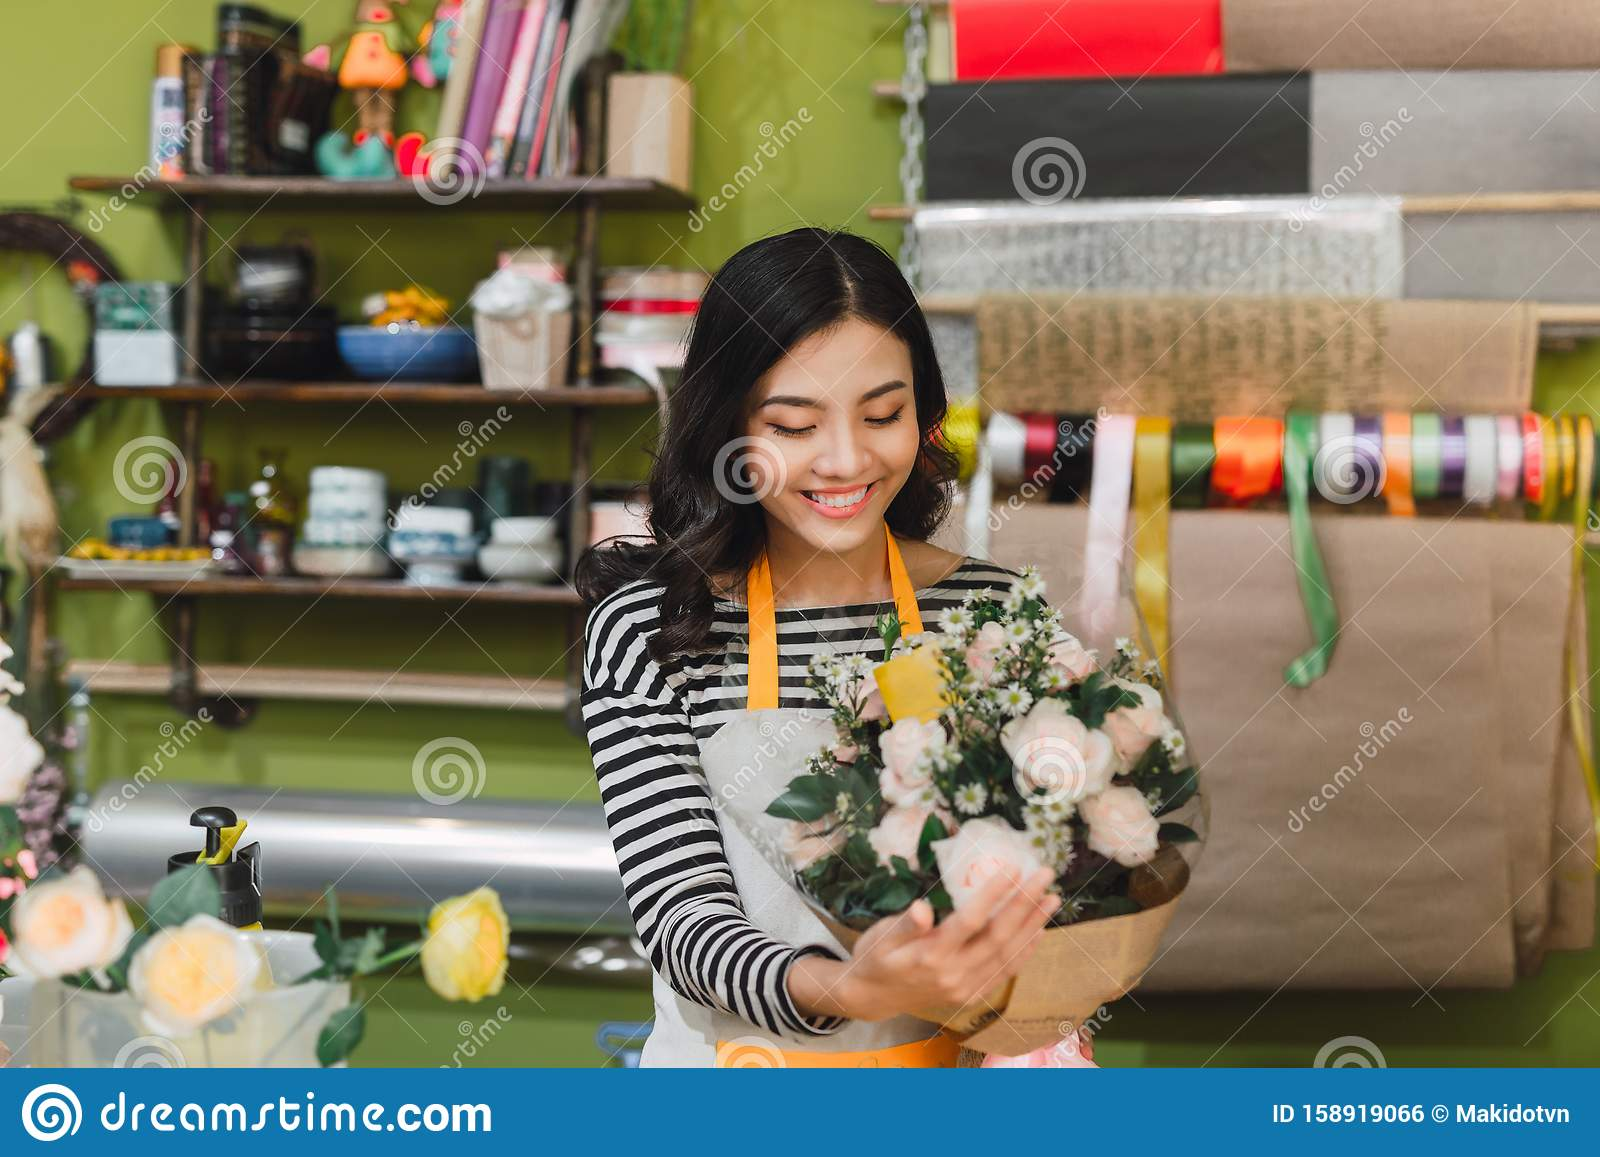 Smiling woman florist, small business flower shop owner, at counter, looking friendly at camera working at a special flower